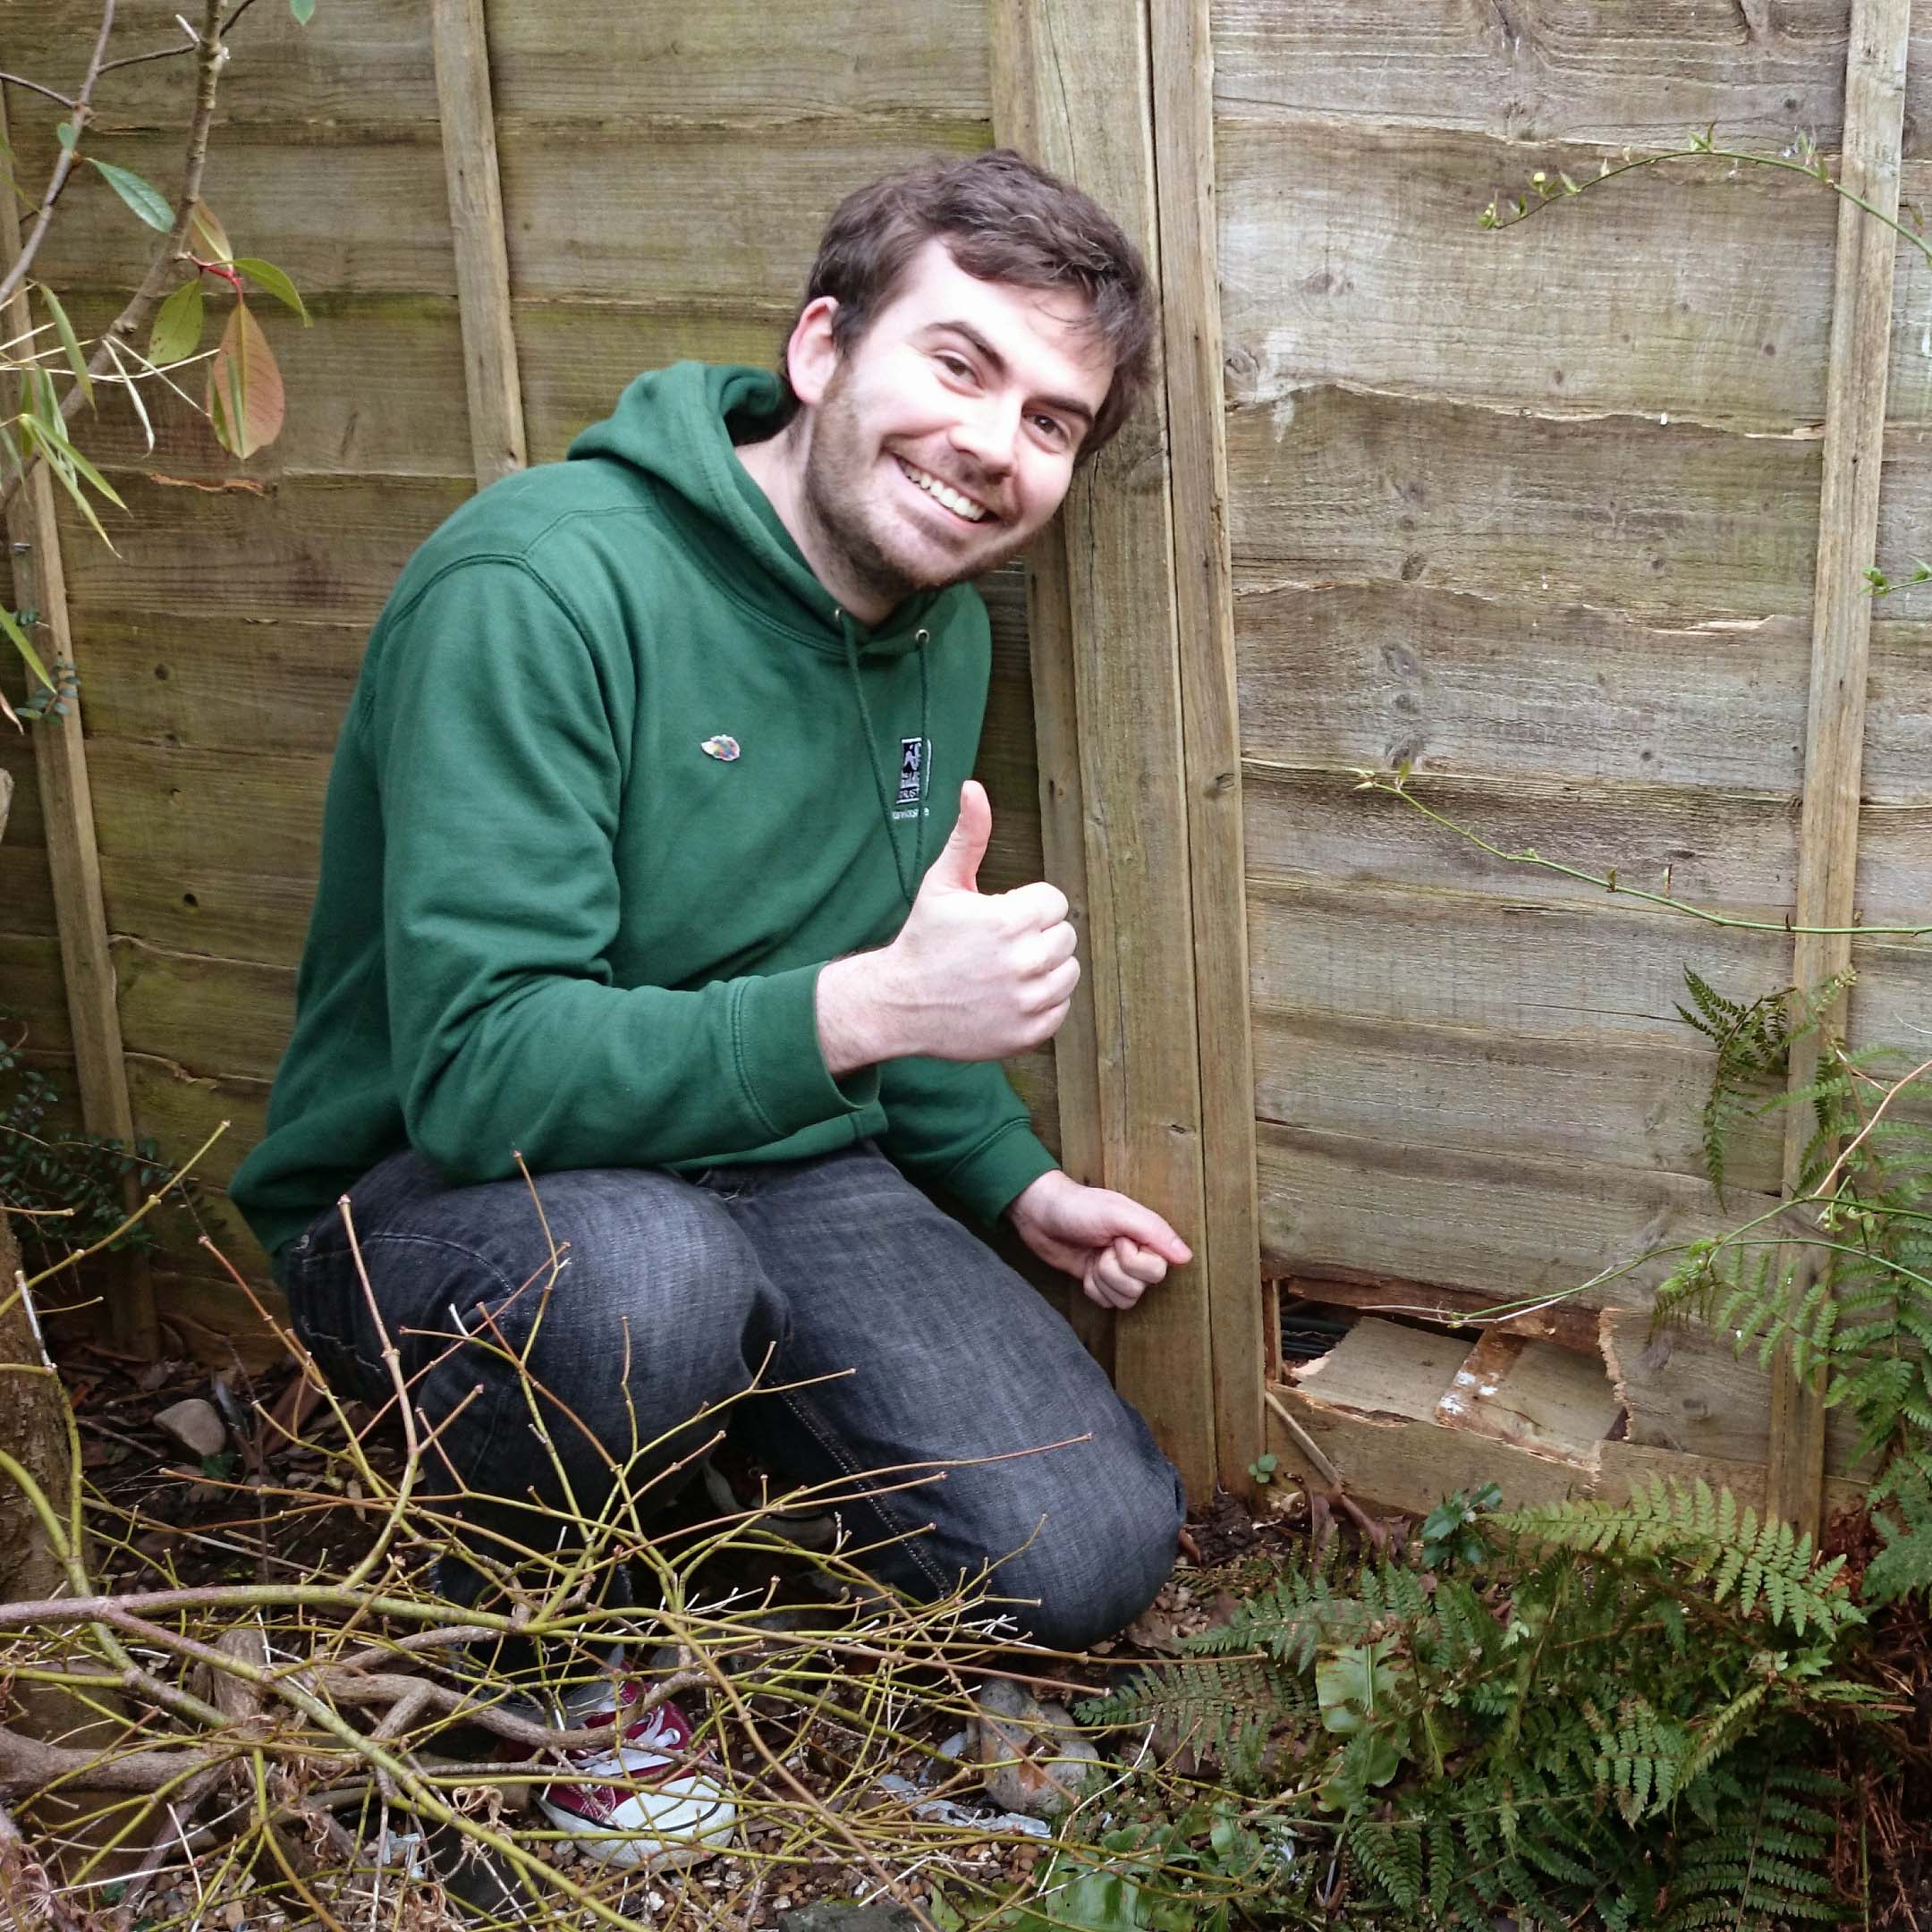 Simon Thompson runs the first hedgehog conservation zone in the UK